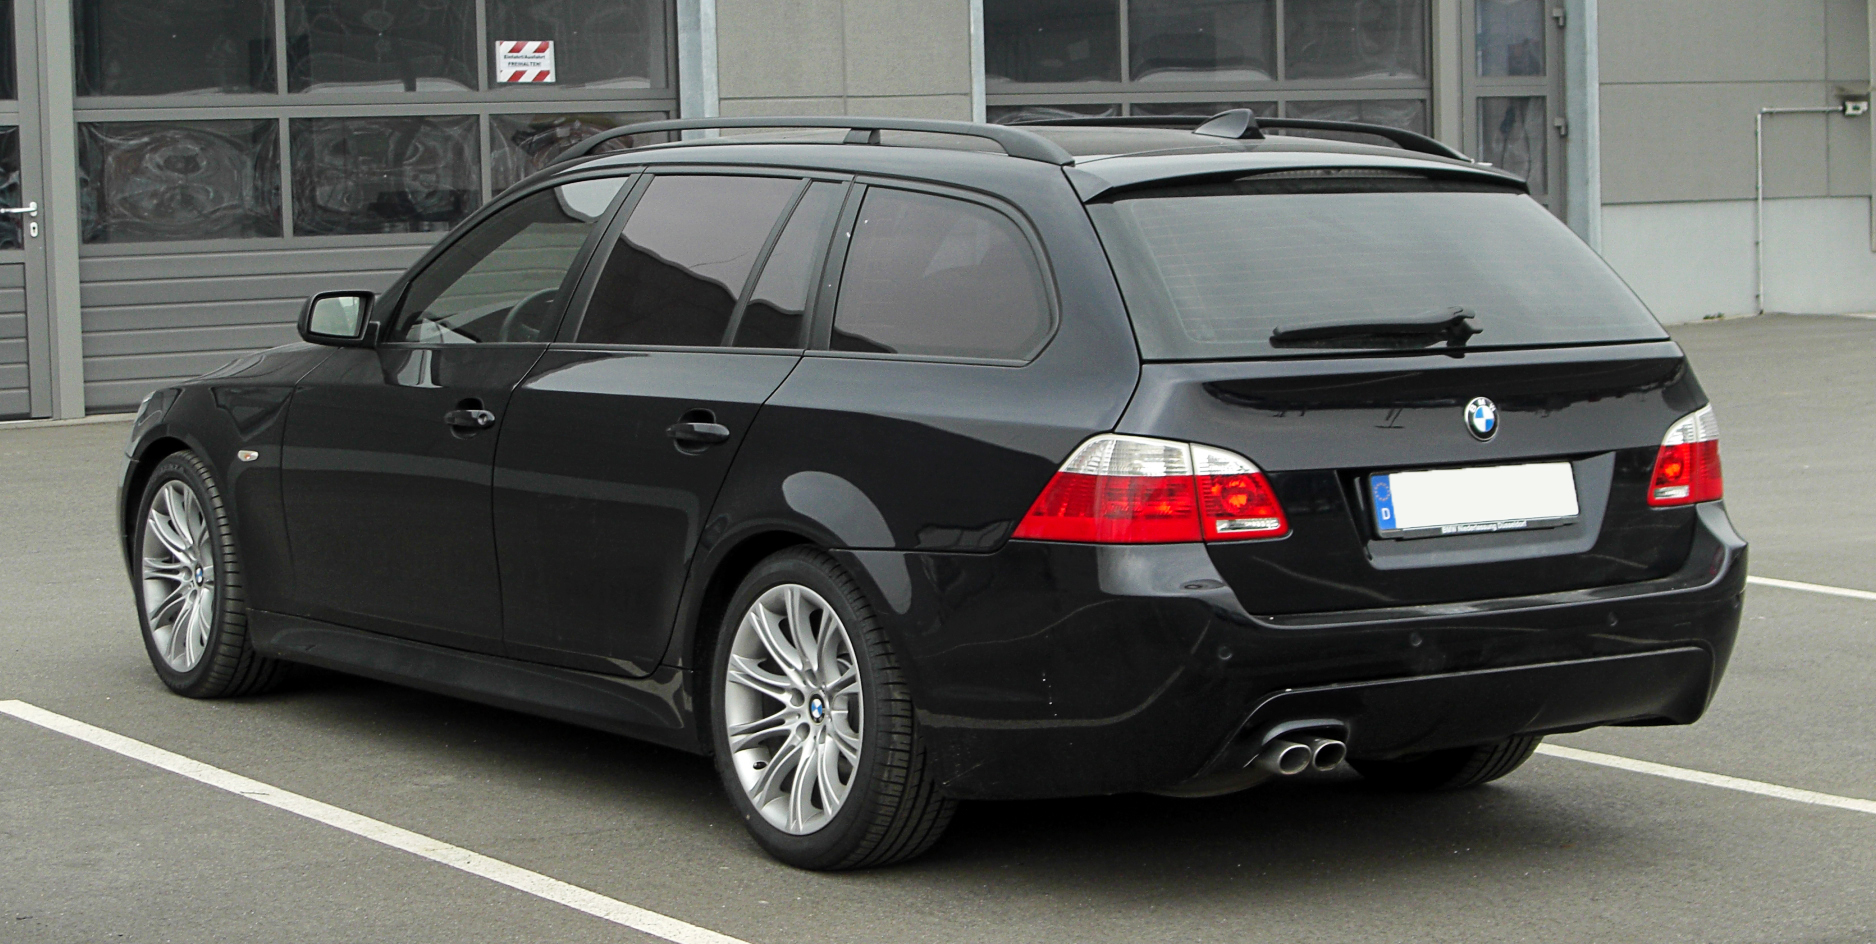 What Do You Guys Think About Bmw E61 Please Comment